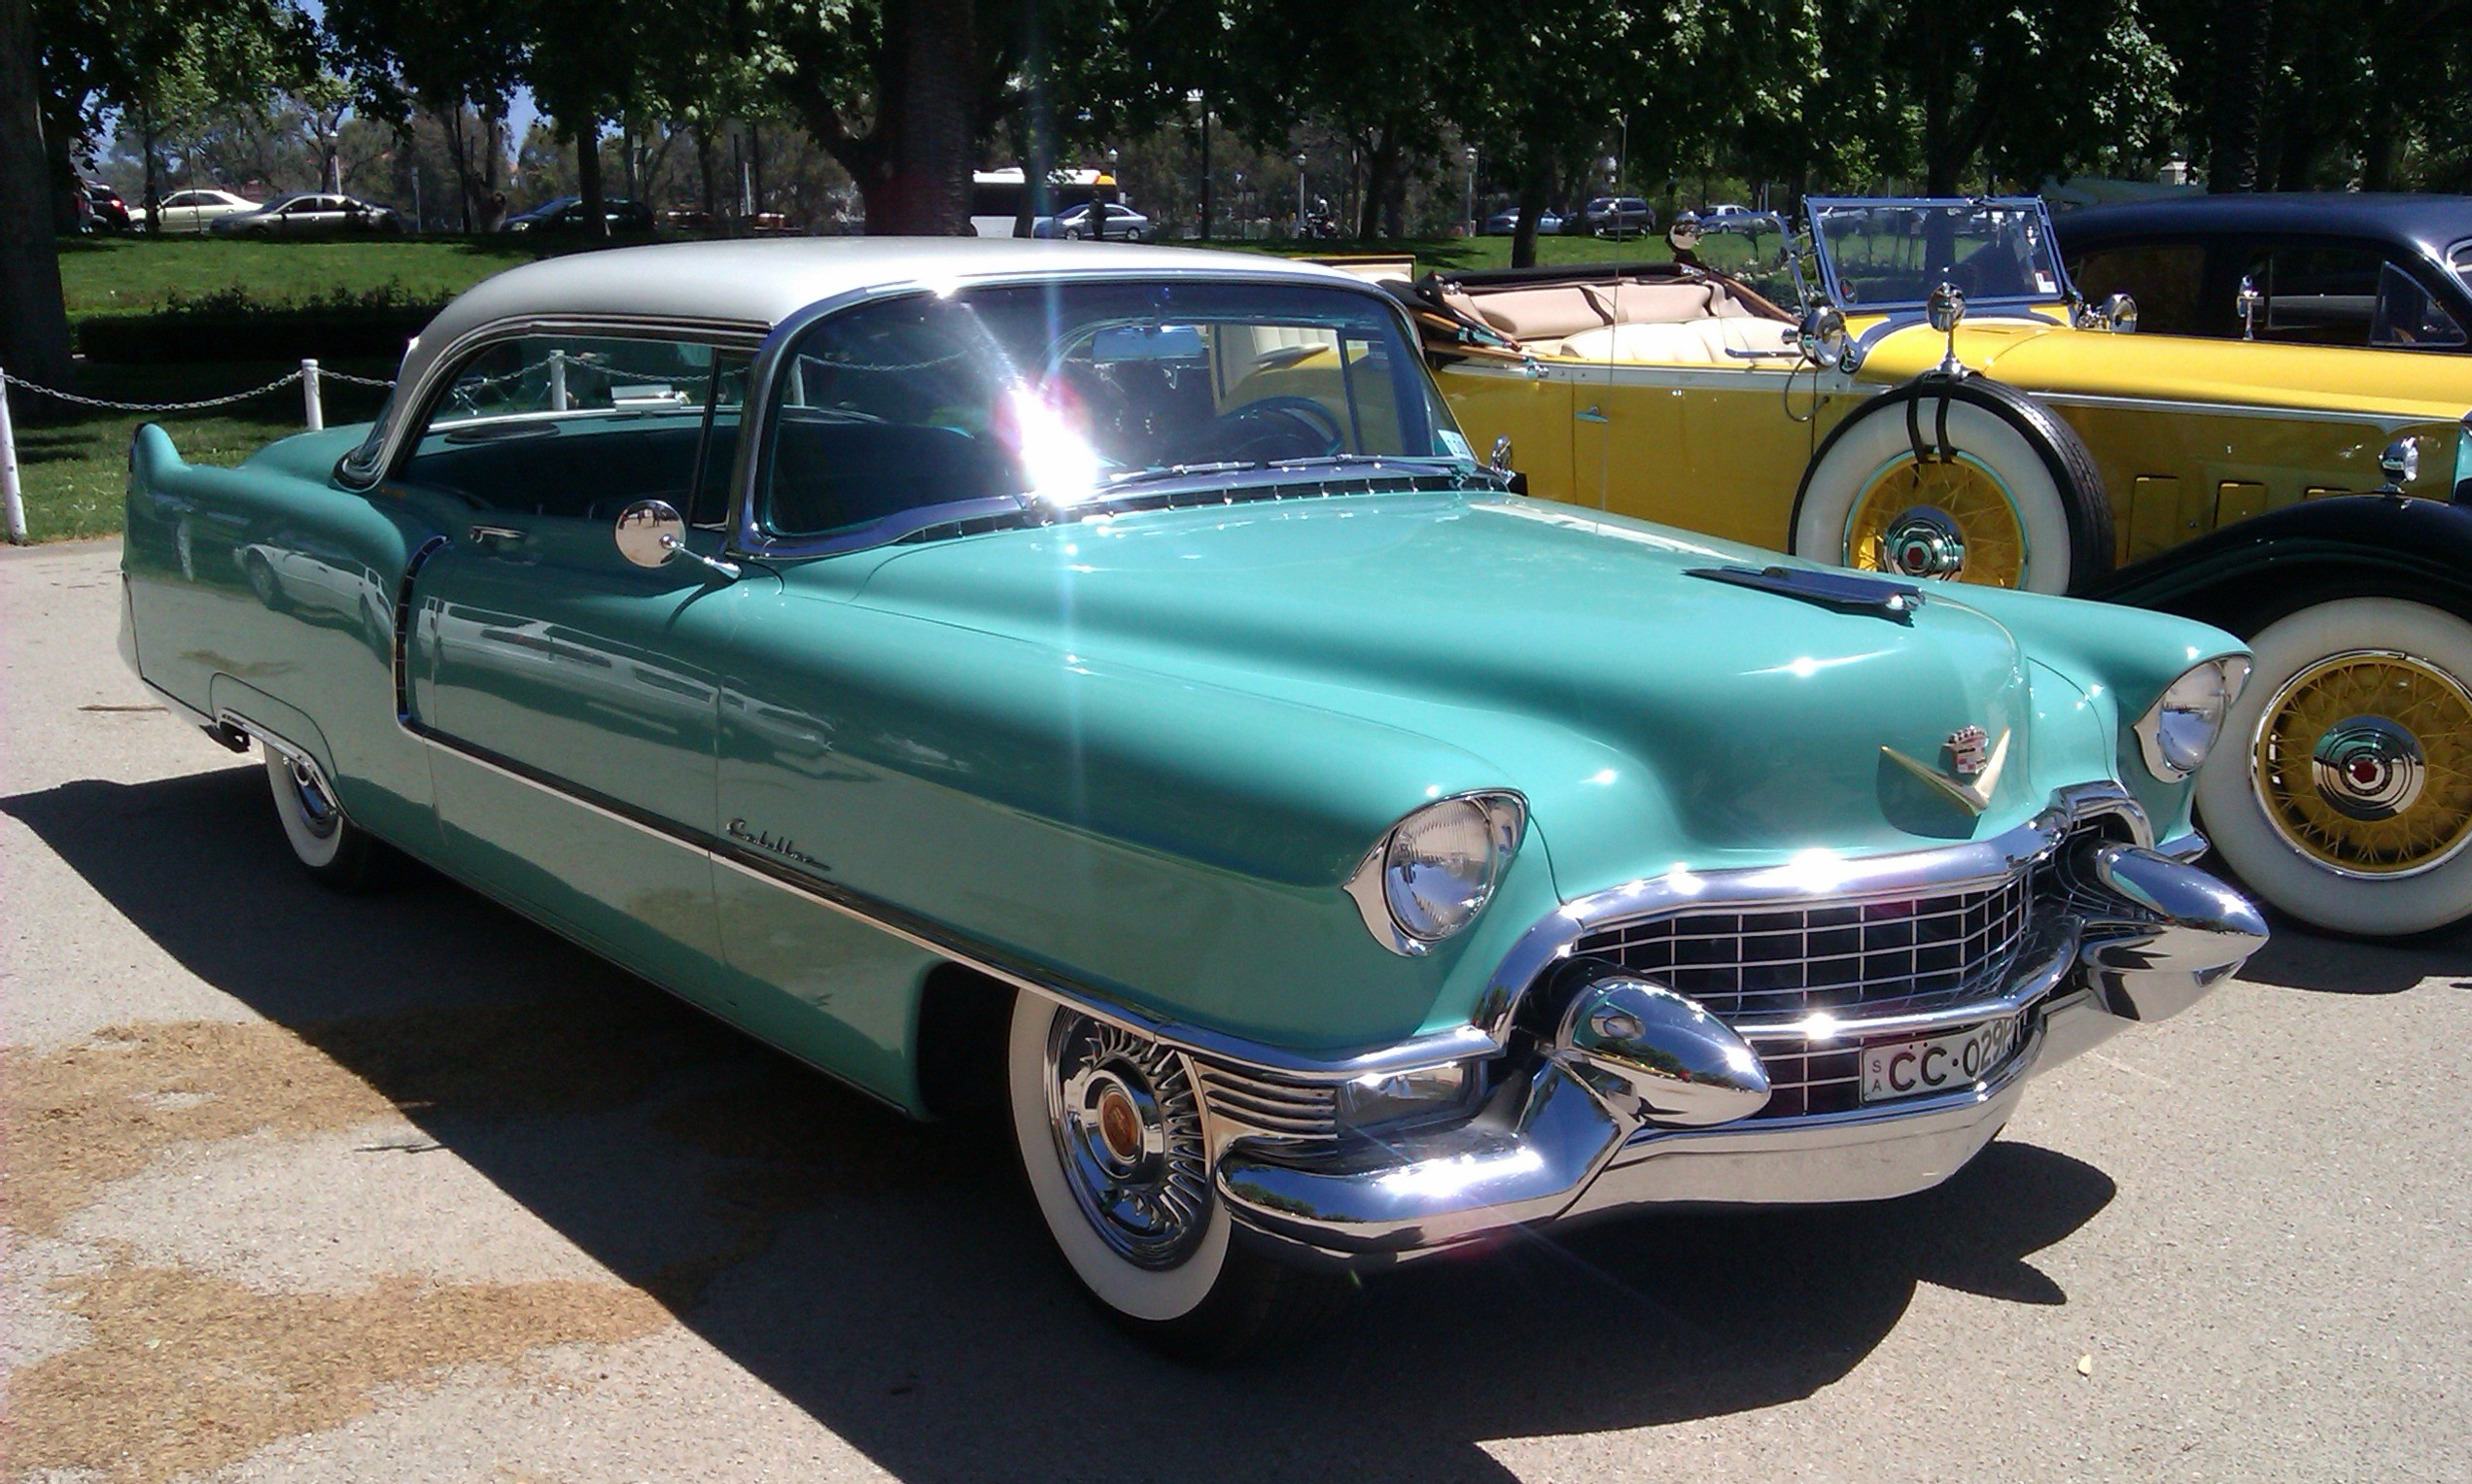 My grandma\'s 1953 Cadillac with 4881 miles : cars